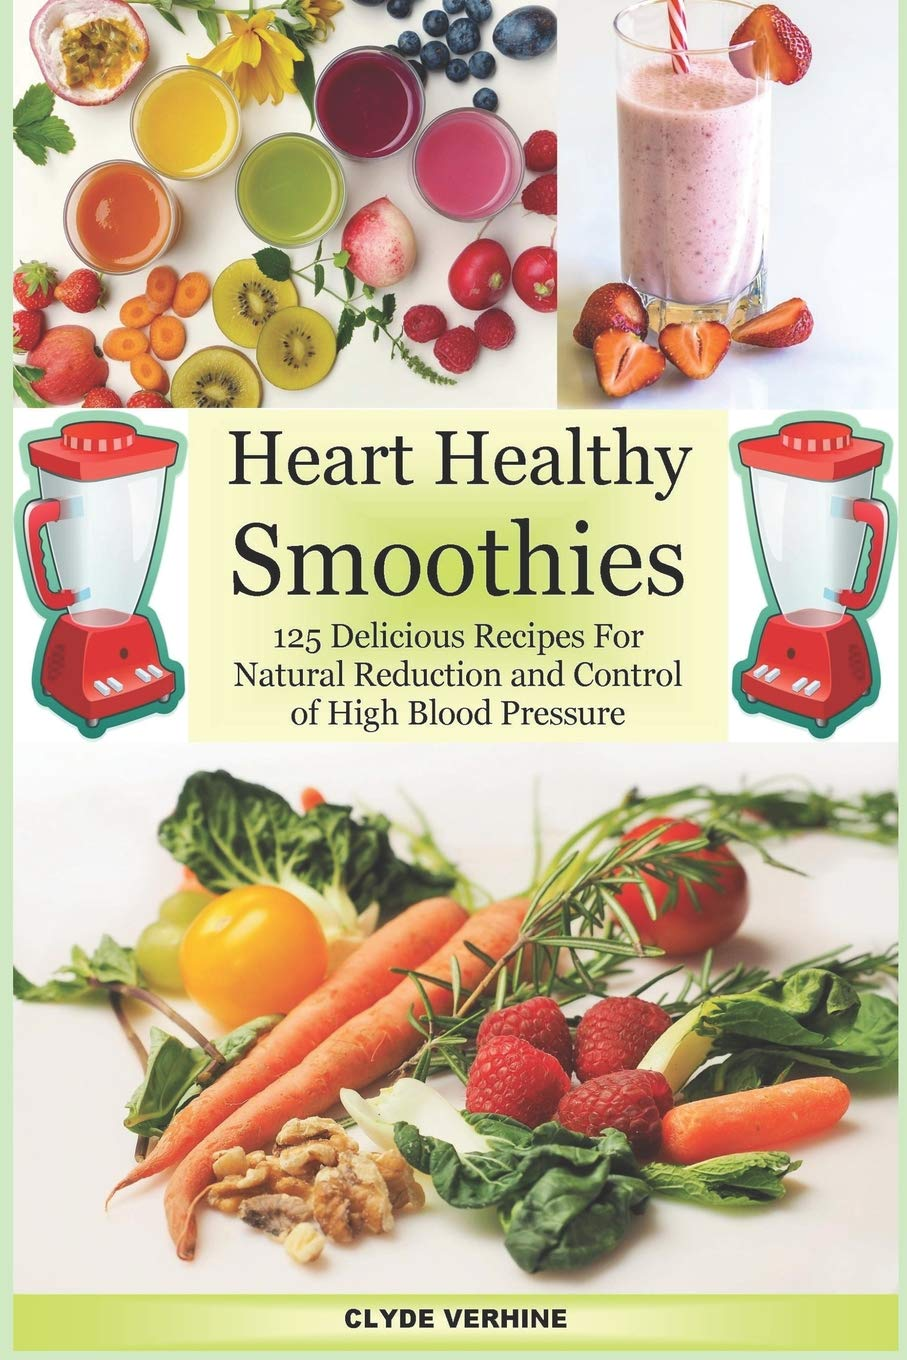 Amazon Com Heart Healthy Smoothies 125 Delicious Recipes For Natural Reduction And Control Of High Blood Pressure 9781542869744 Verhine Clyde Books